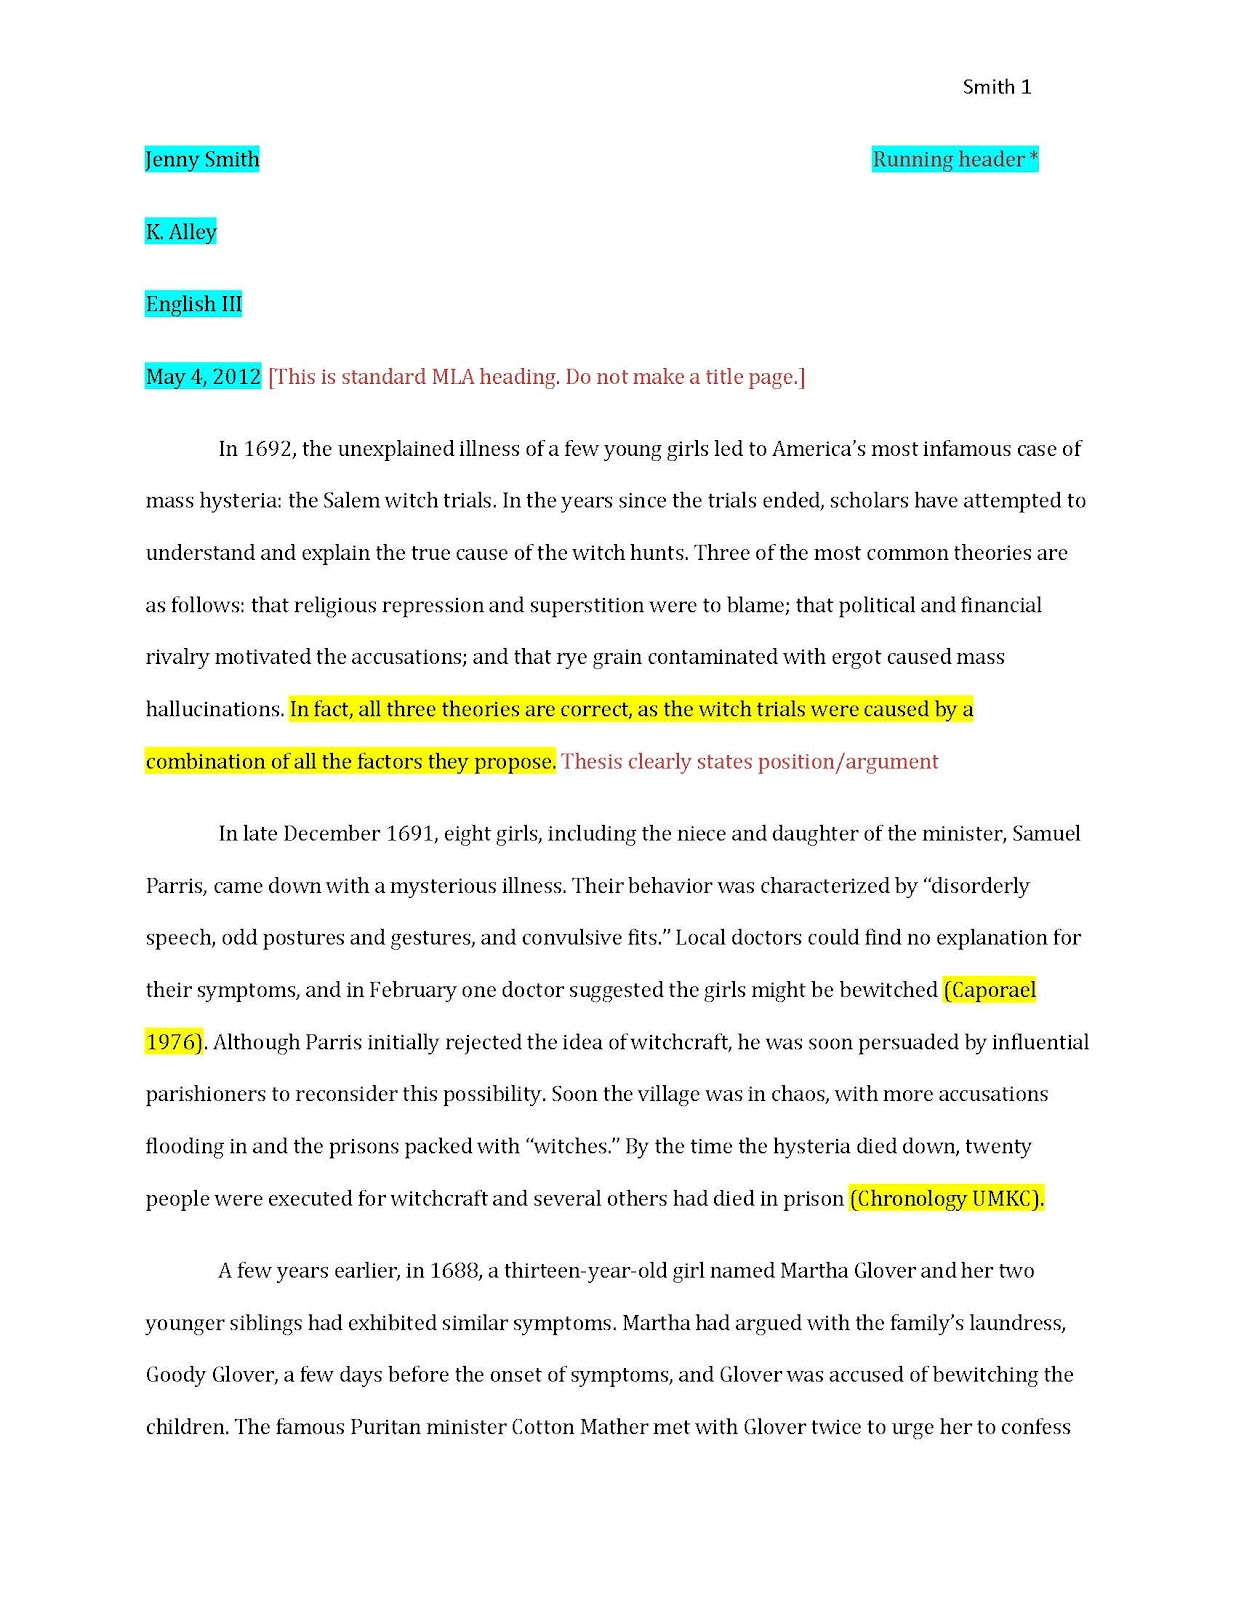 006 Examplepaper Page 1 Research Paper Citations Amazing For How To Make Bibliography Do Write Full